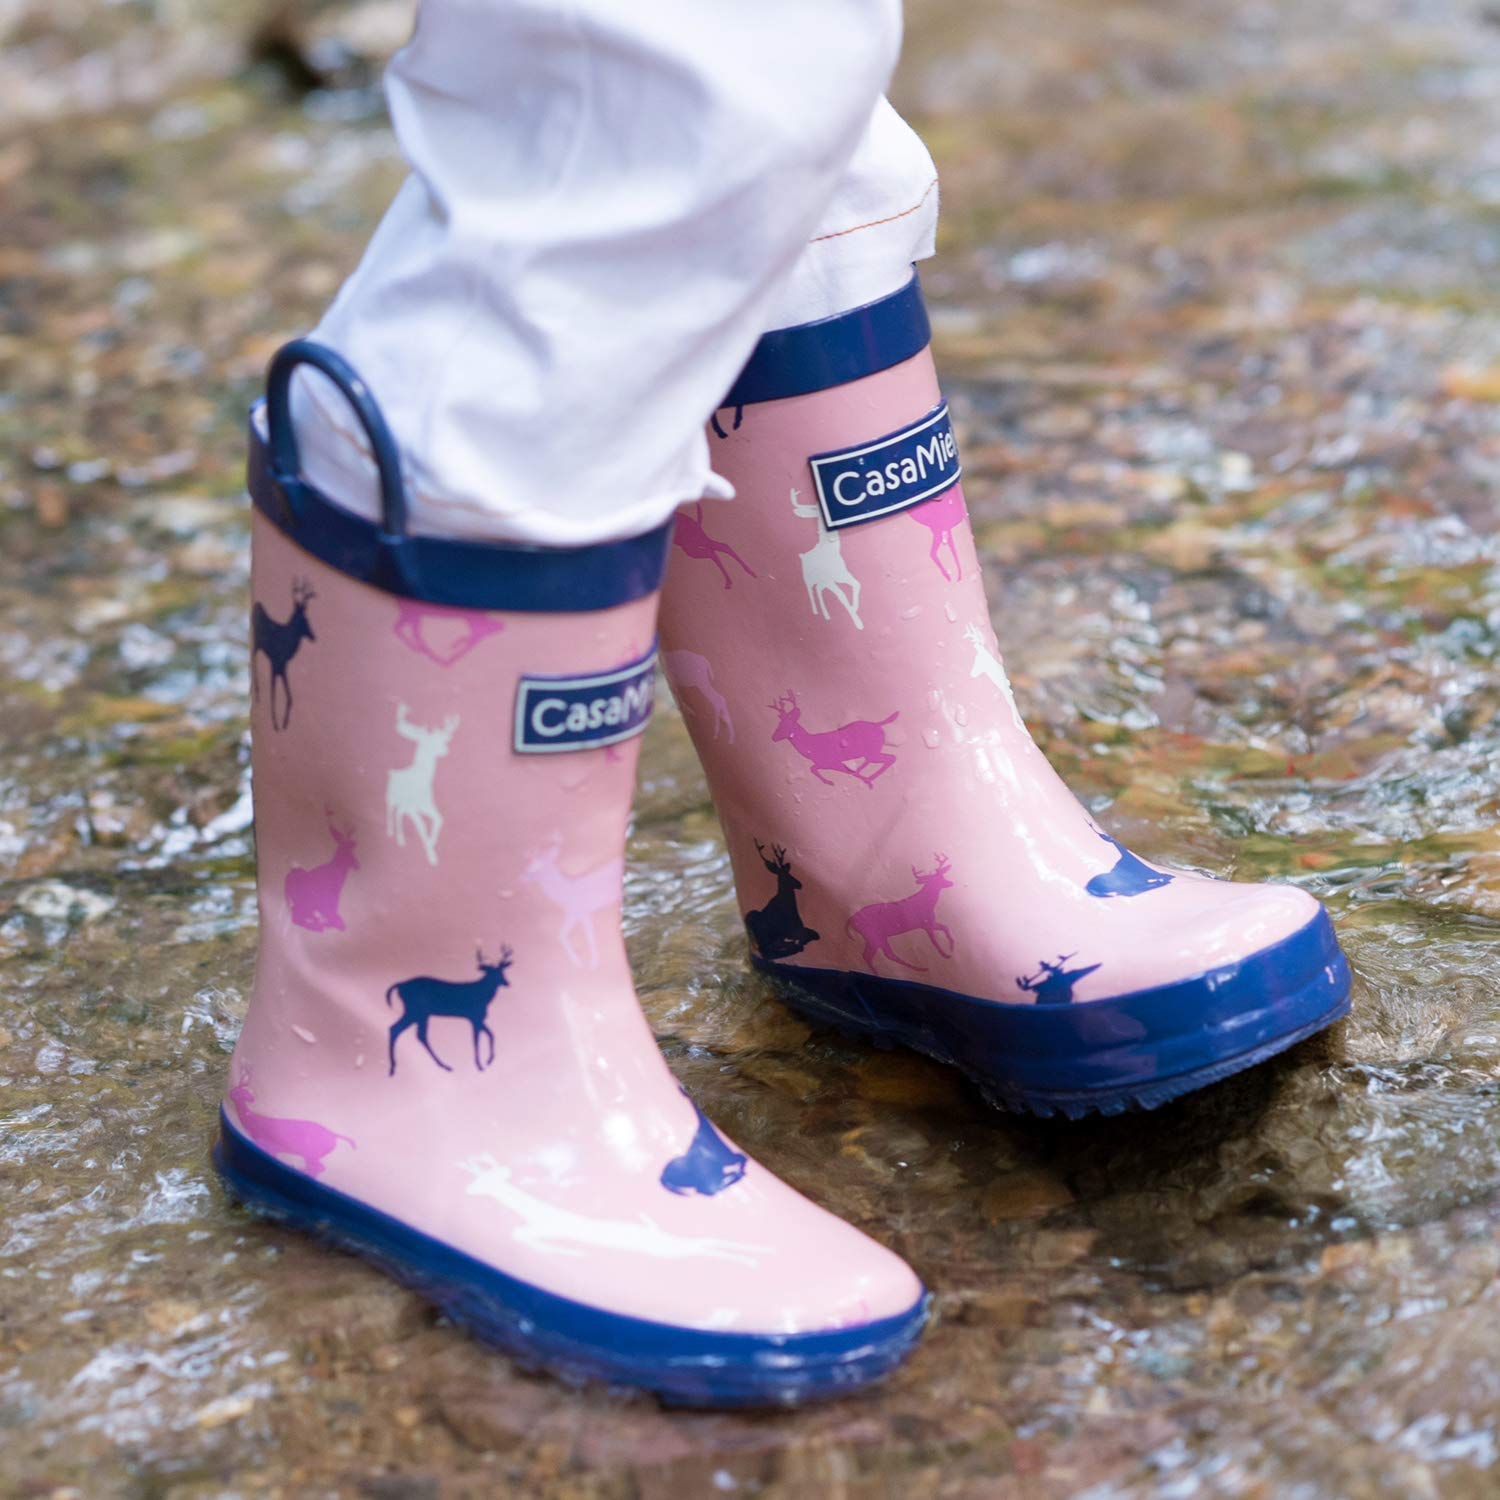 CasaMiel Kid&Toddler Rain Boots for Girls, Children's Handcrafted Rubber Boots, Pink Christmas Deer by CasaMiel (Image #6)